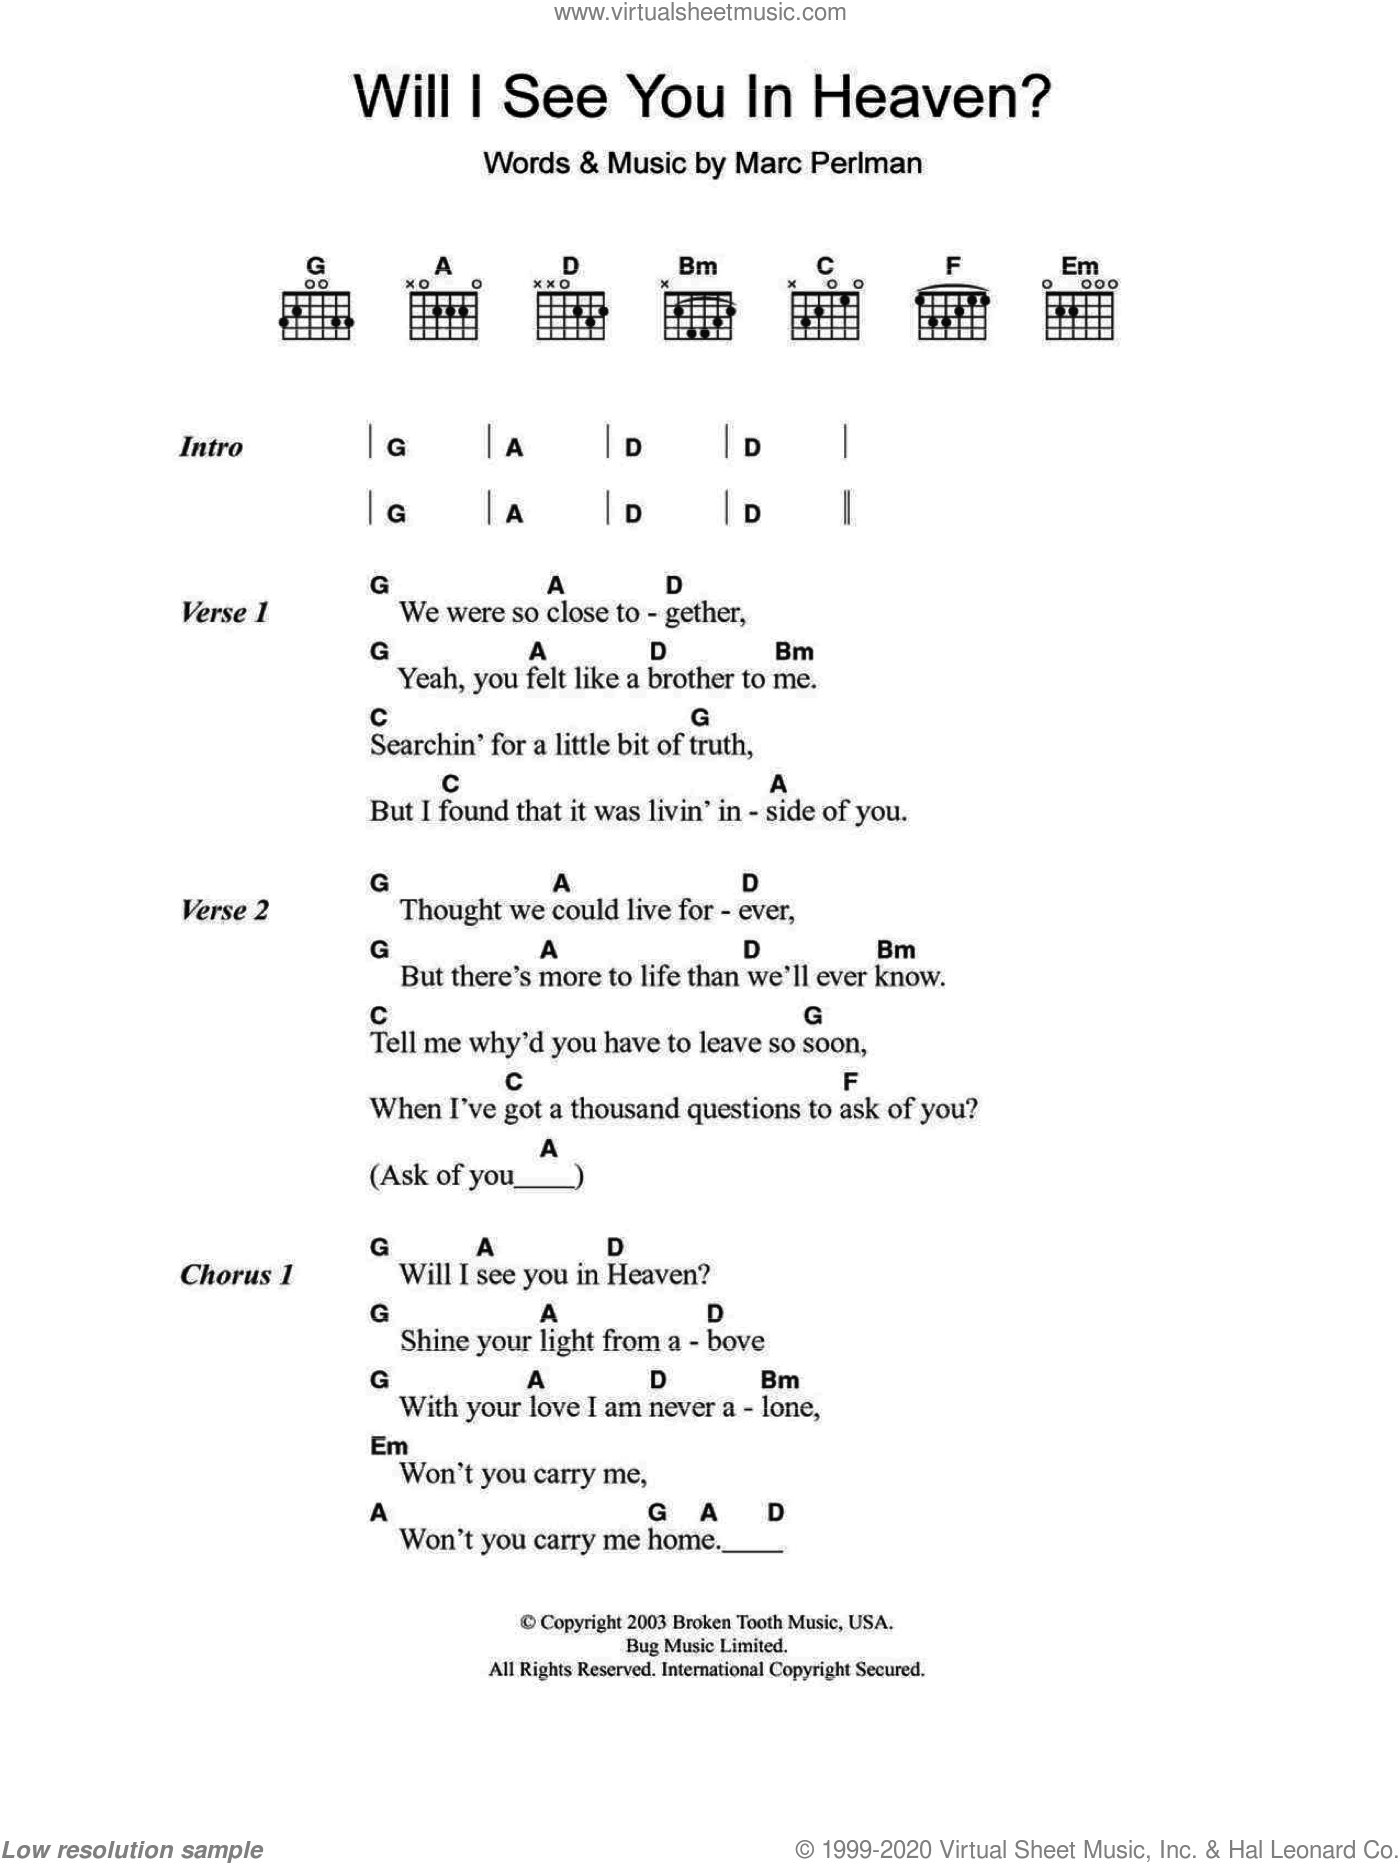 Will I See You In Heaven sheet music for guitar (chords) by The Jayhawks. Score Image Preview.